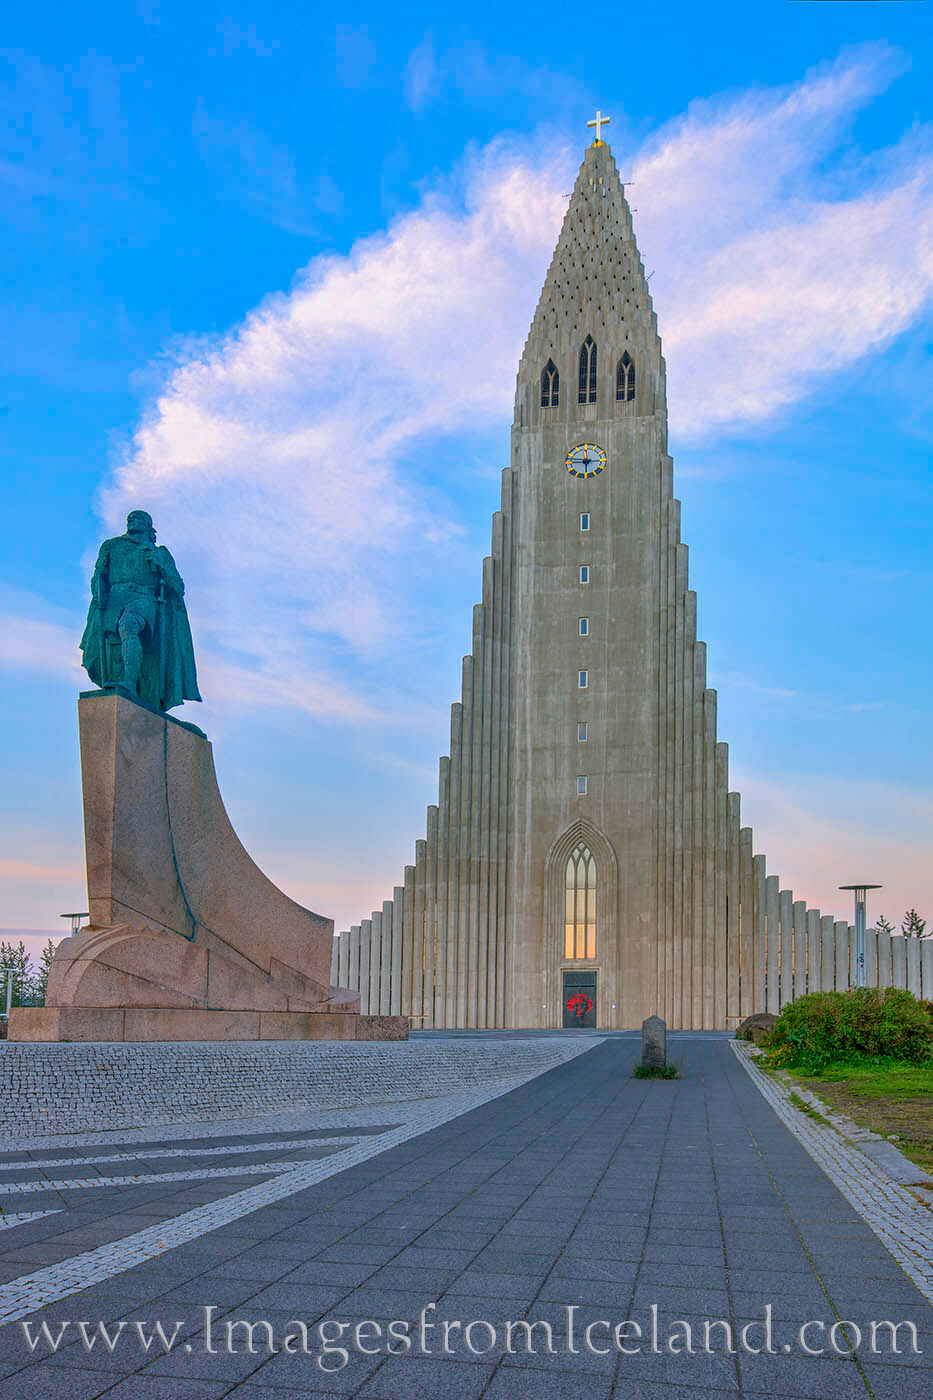 Hallgrímskirkja and the statue Leifur Eiríksson rest at the top of Iceland's capital city, Reykjavic. Taken at 11:47pm, the...